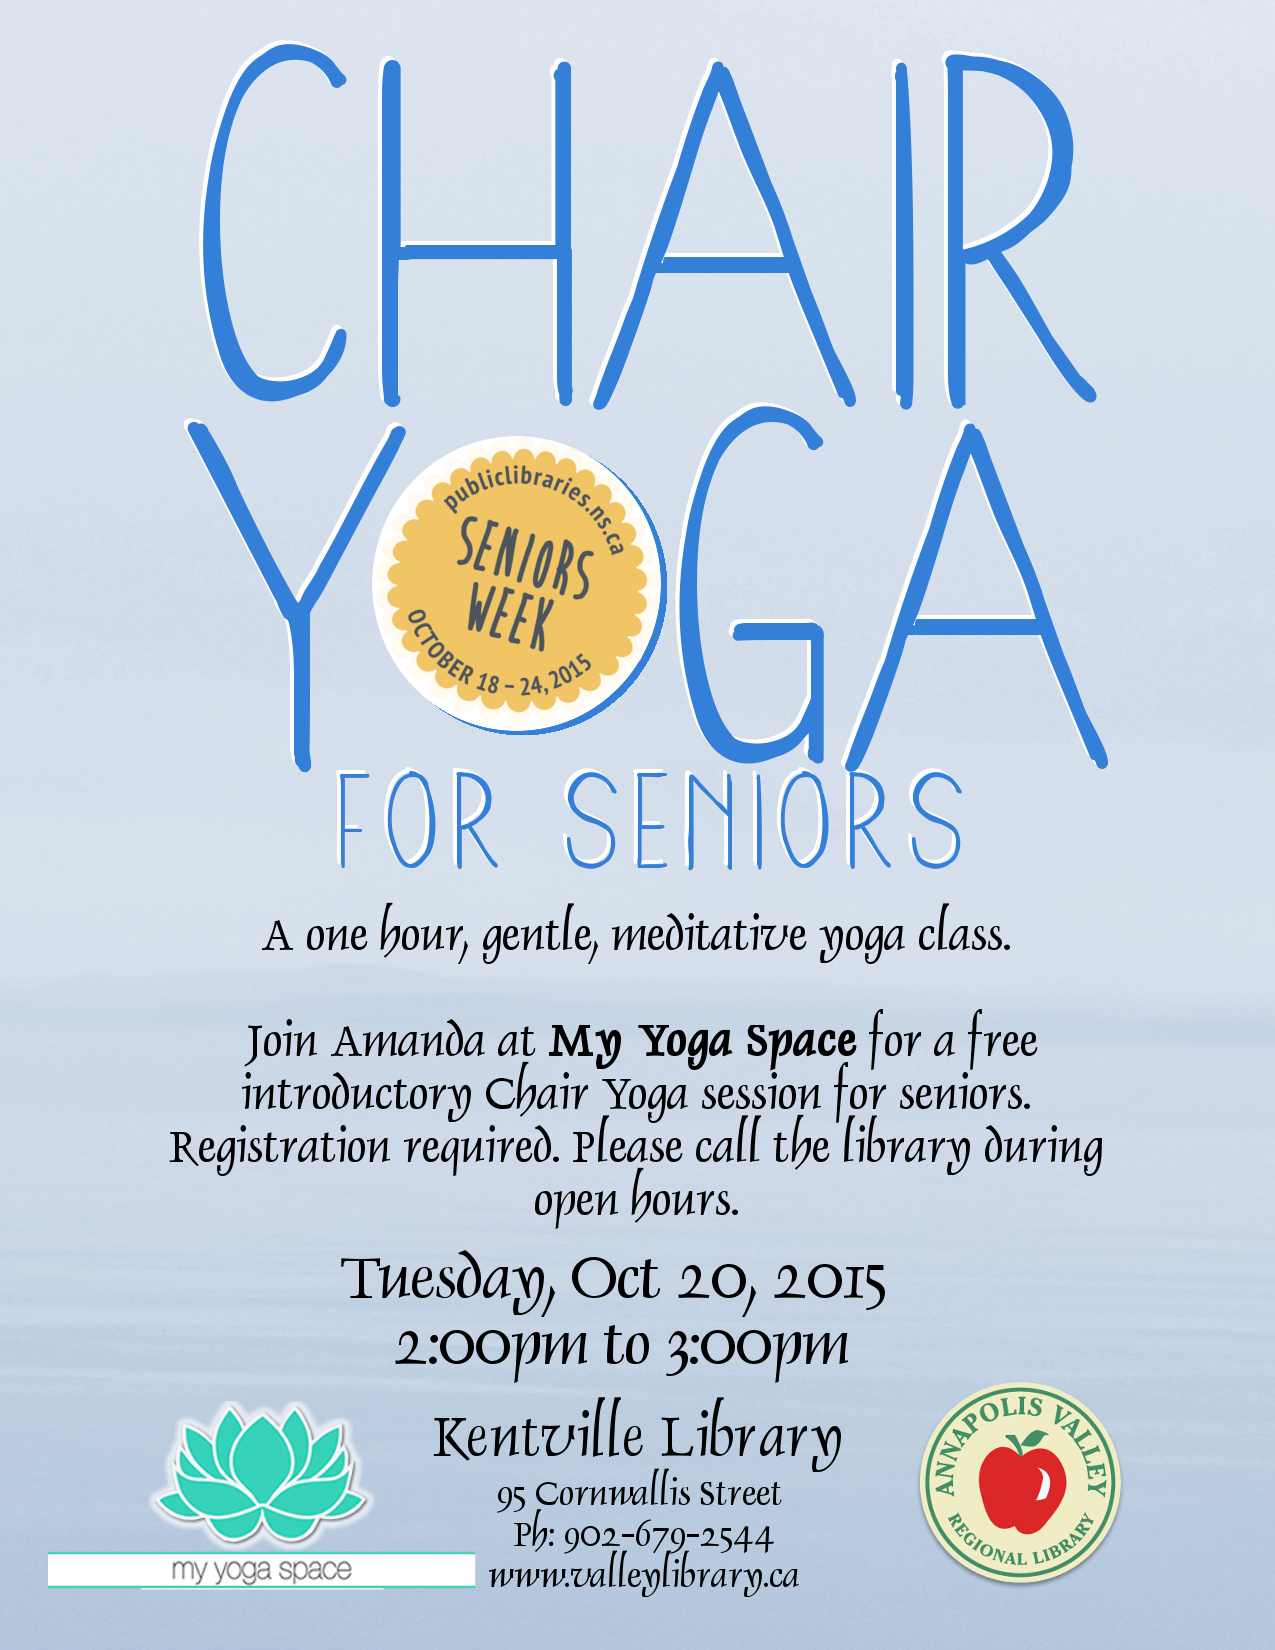 Chair yoga for seniors - Chair Yoga For Seniors At My Yoga Space Kentville October 20 2015 2pm